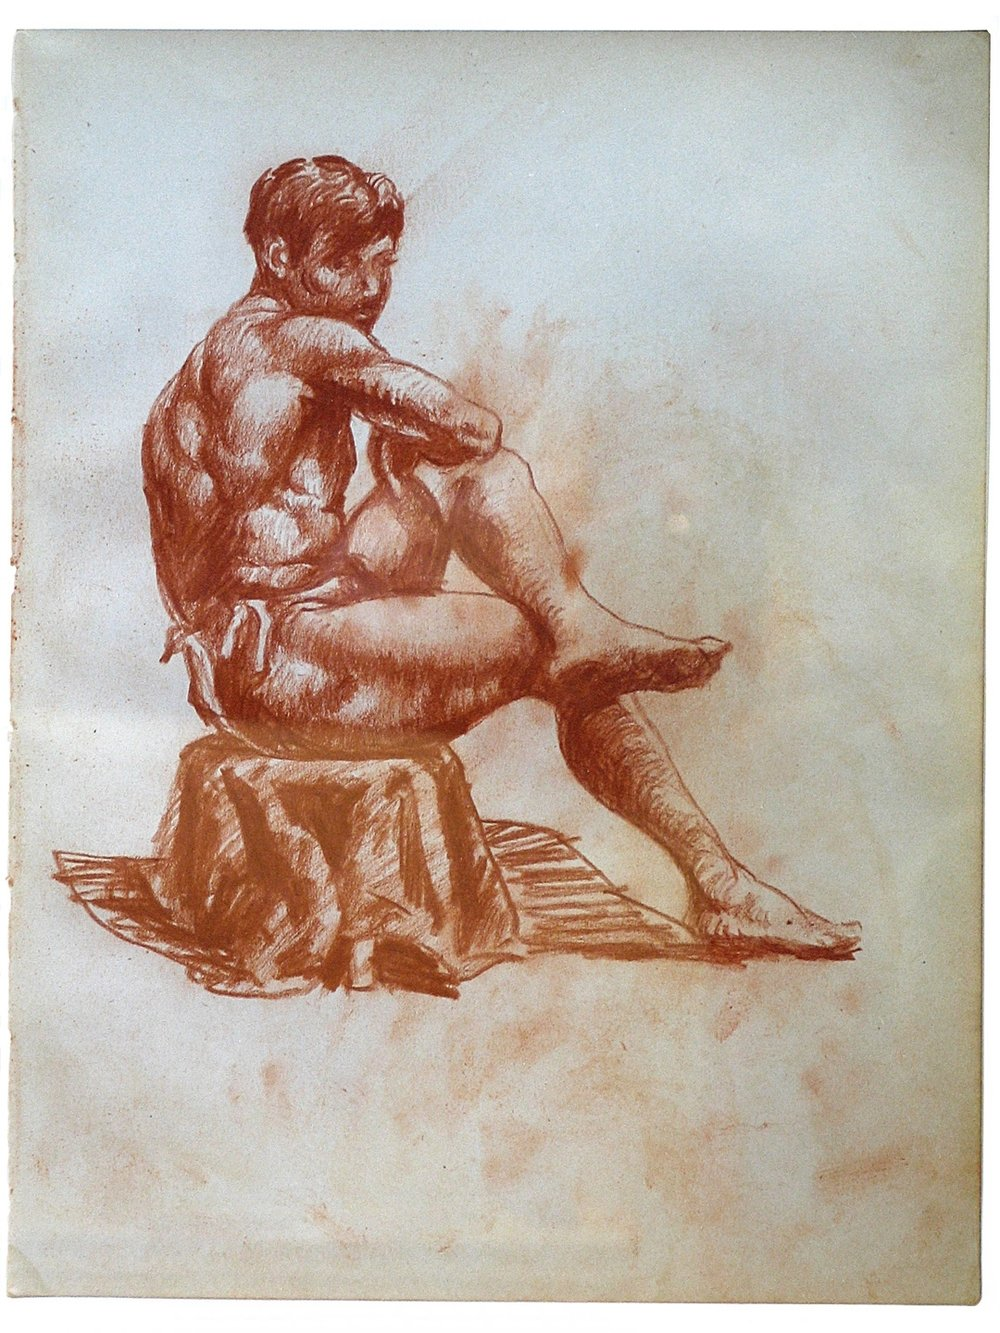 "Sketchbook Drawing:   Seated Man  1915-16, red conte crayon on paper 10 ¼ x 7 ¾"", framed Nakian Family 60.10-001"